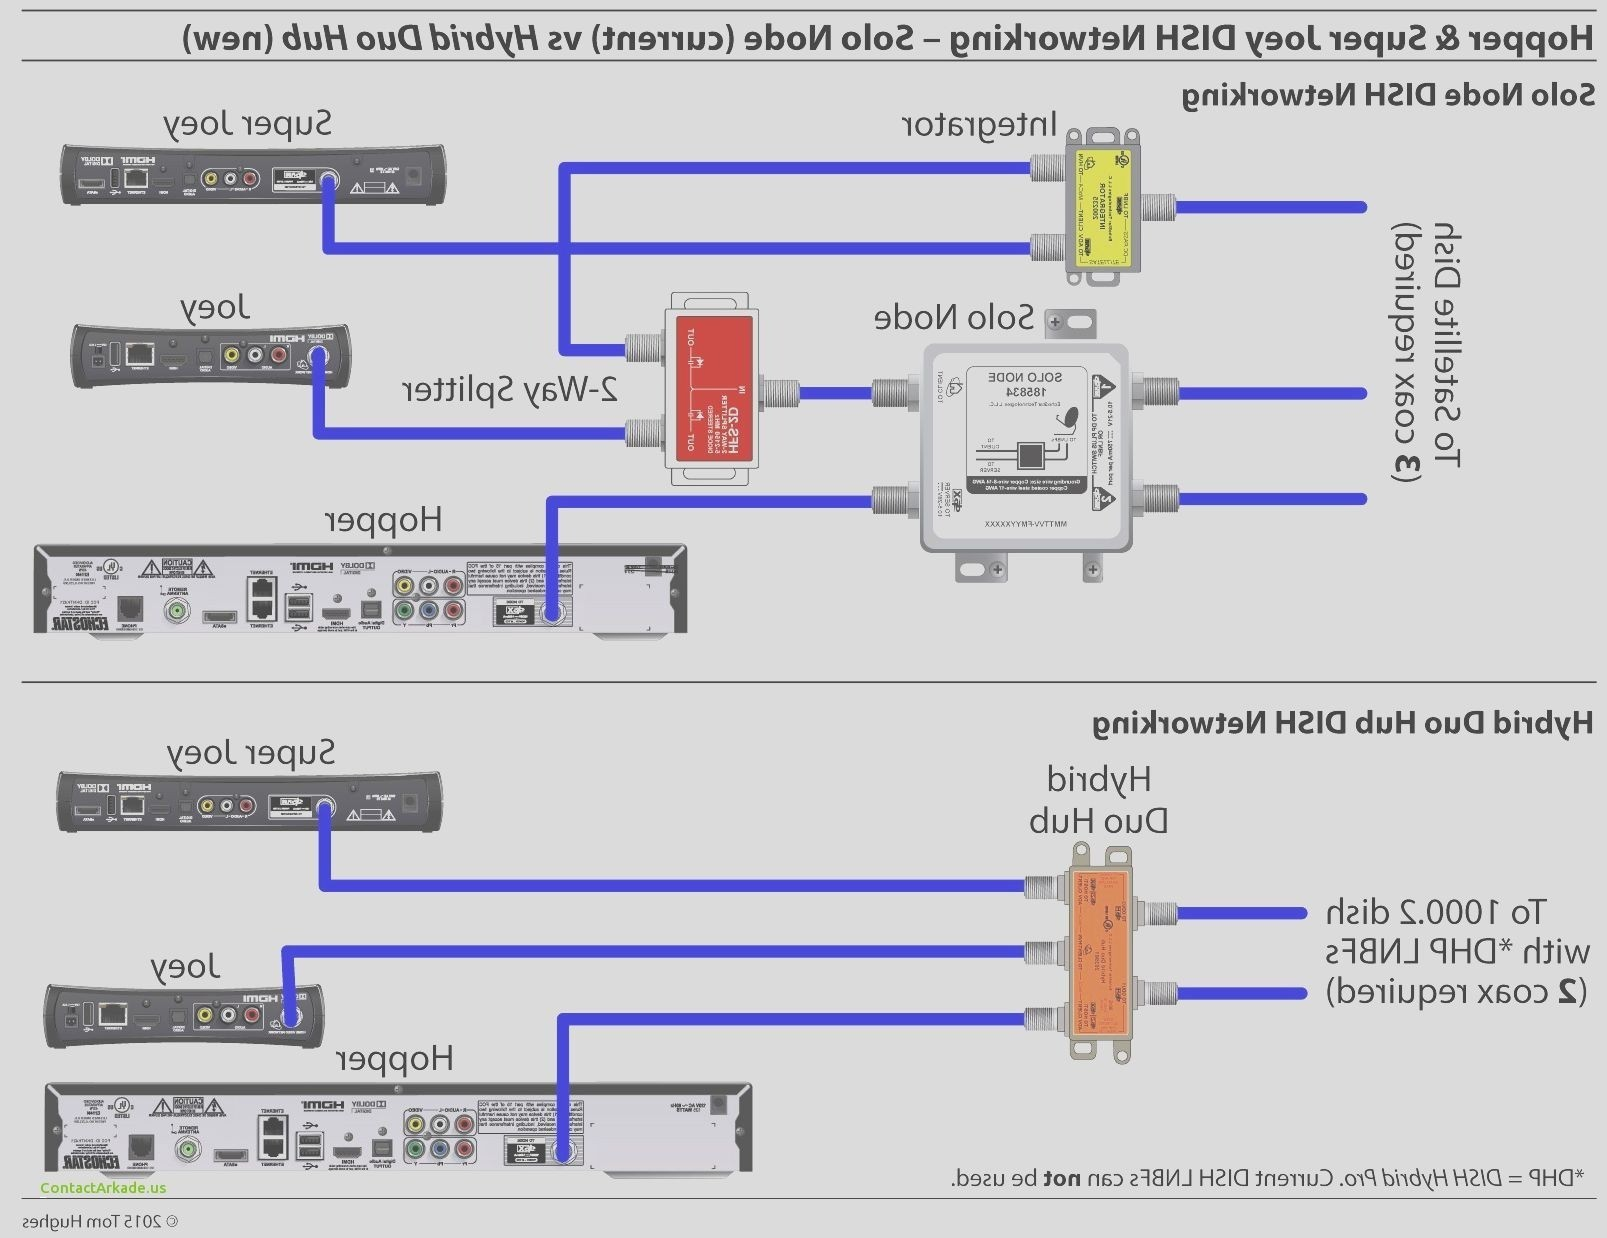 Wiring Diagram For A Cat5 Cable New Cat5e Wire Diagram New Ethernet Cable Wiring Diagram New Od Wiring